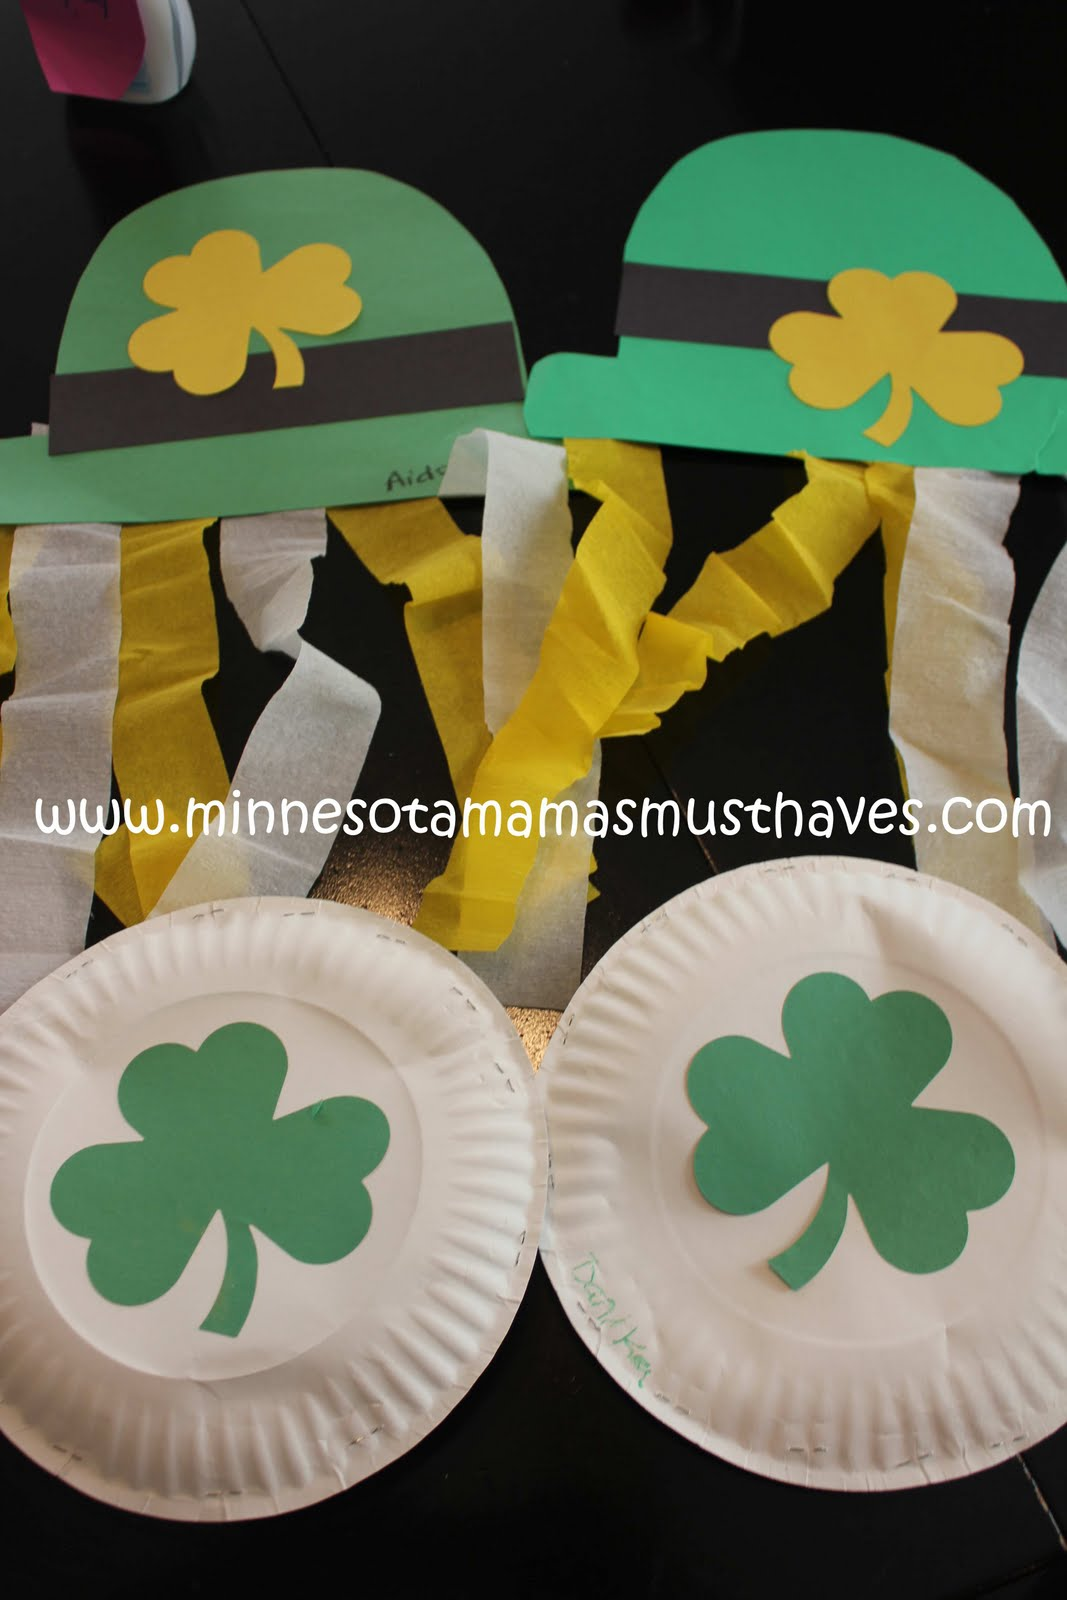 St patricks day preschool crafts - St Patrick S Day Crafts Kids Activities